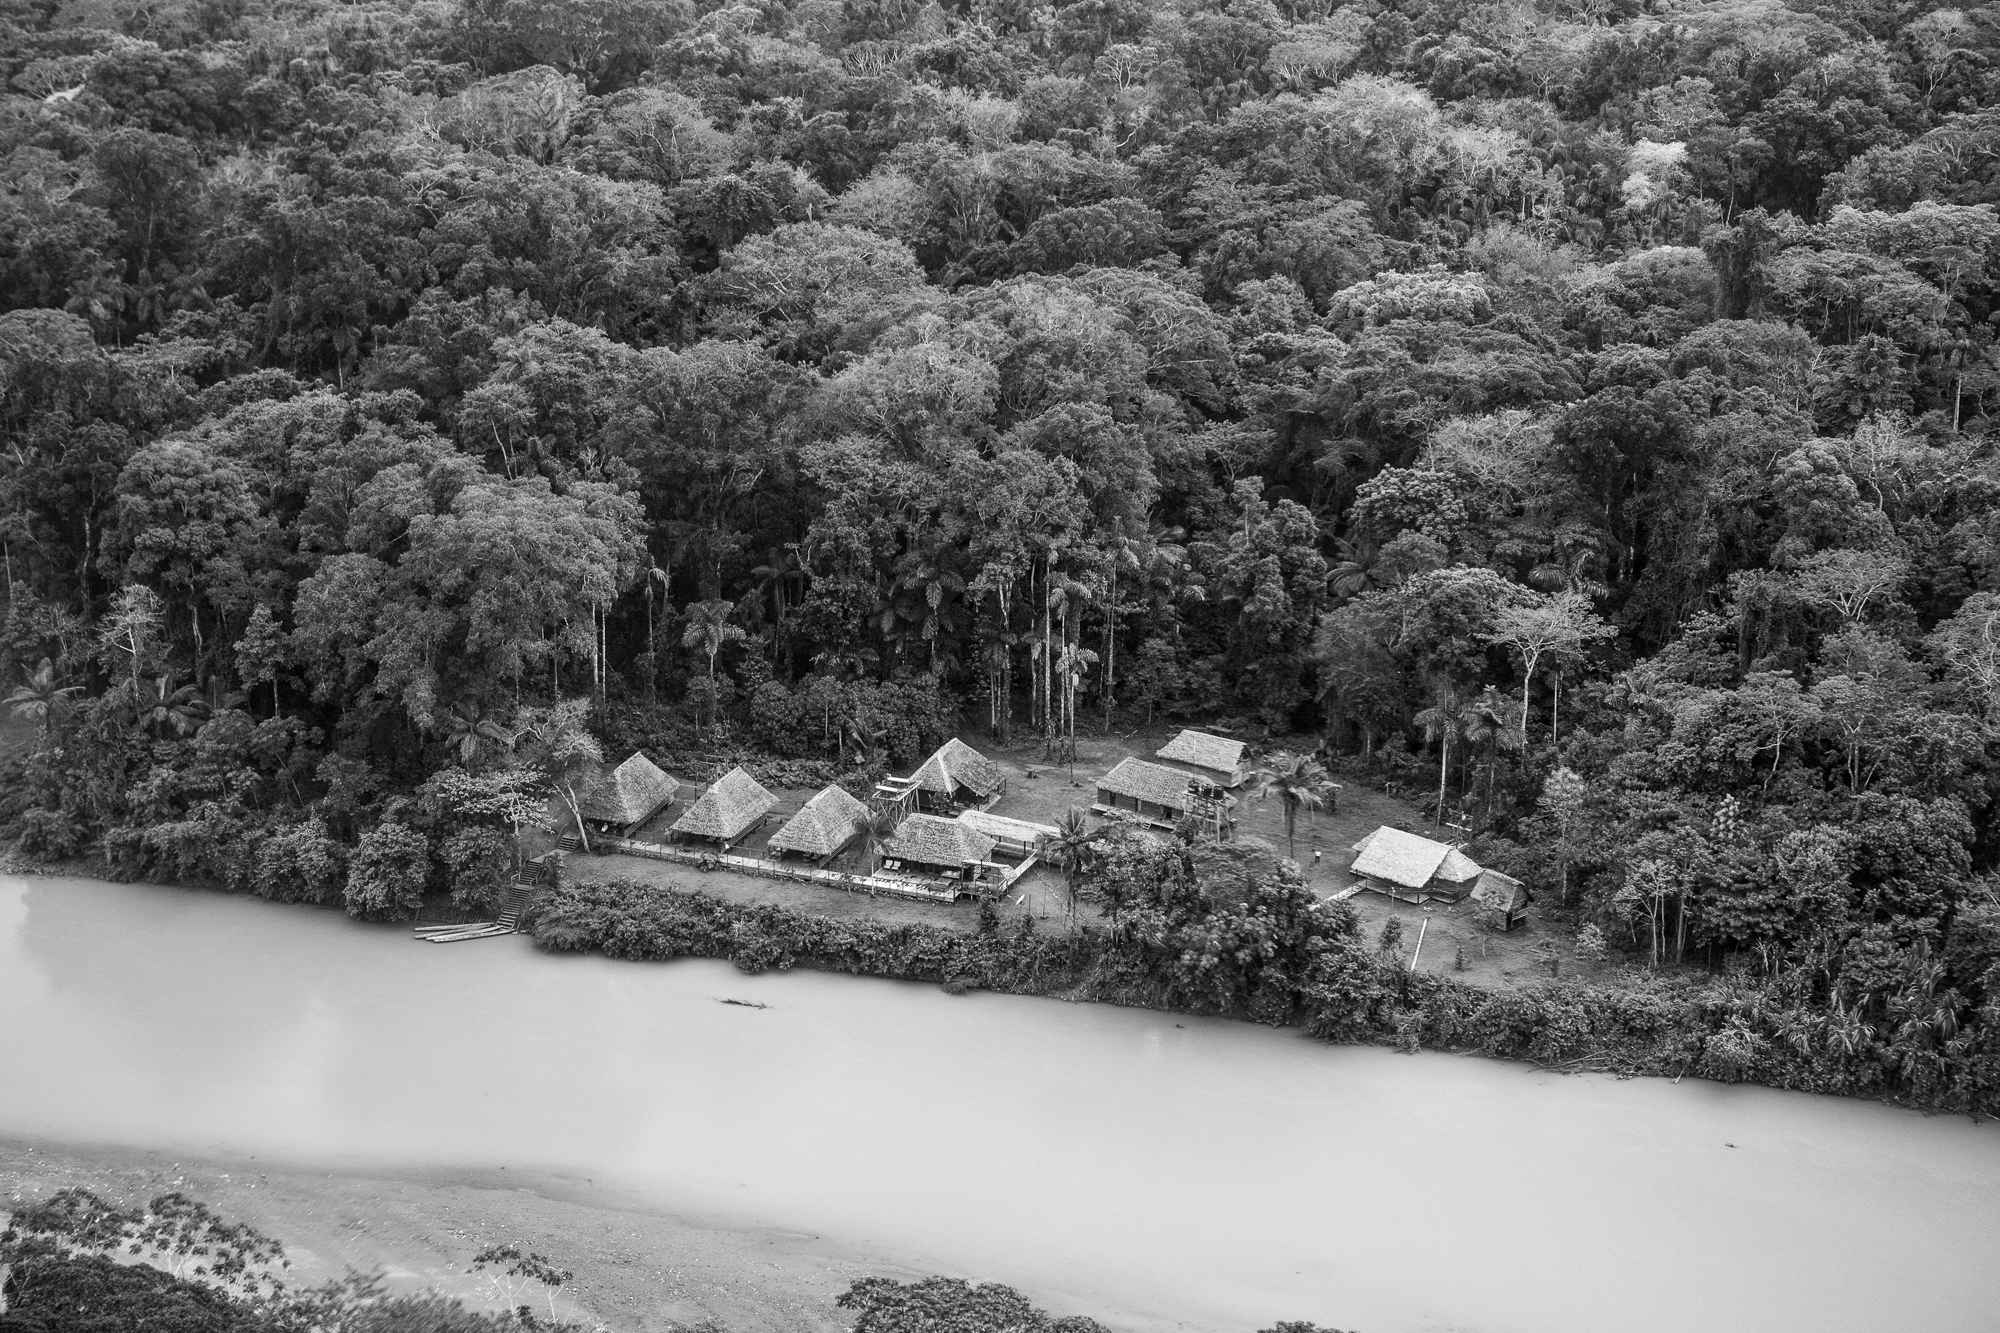 Aerial view of Pluma Lodge. The river here is quite high and muddy due to a huge storm system that had recently passed through.